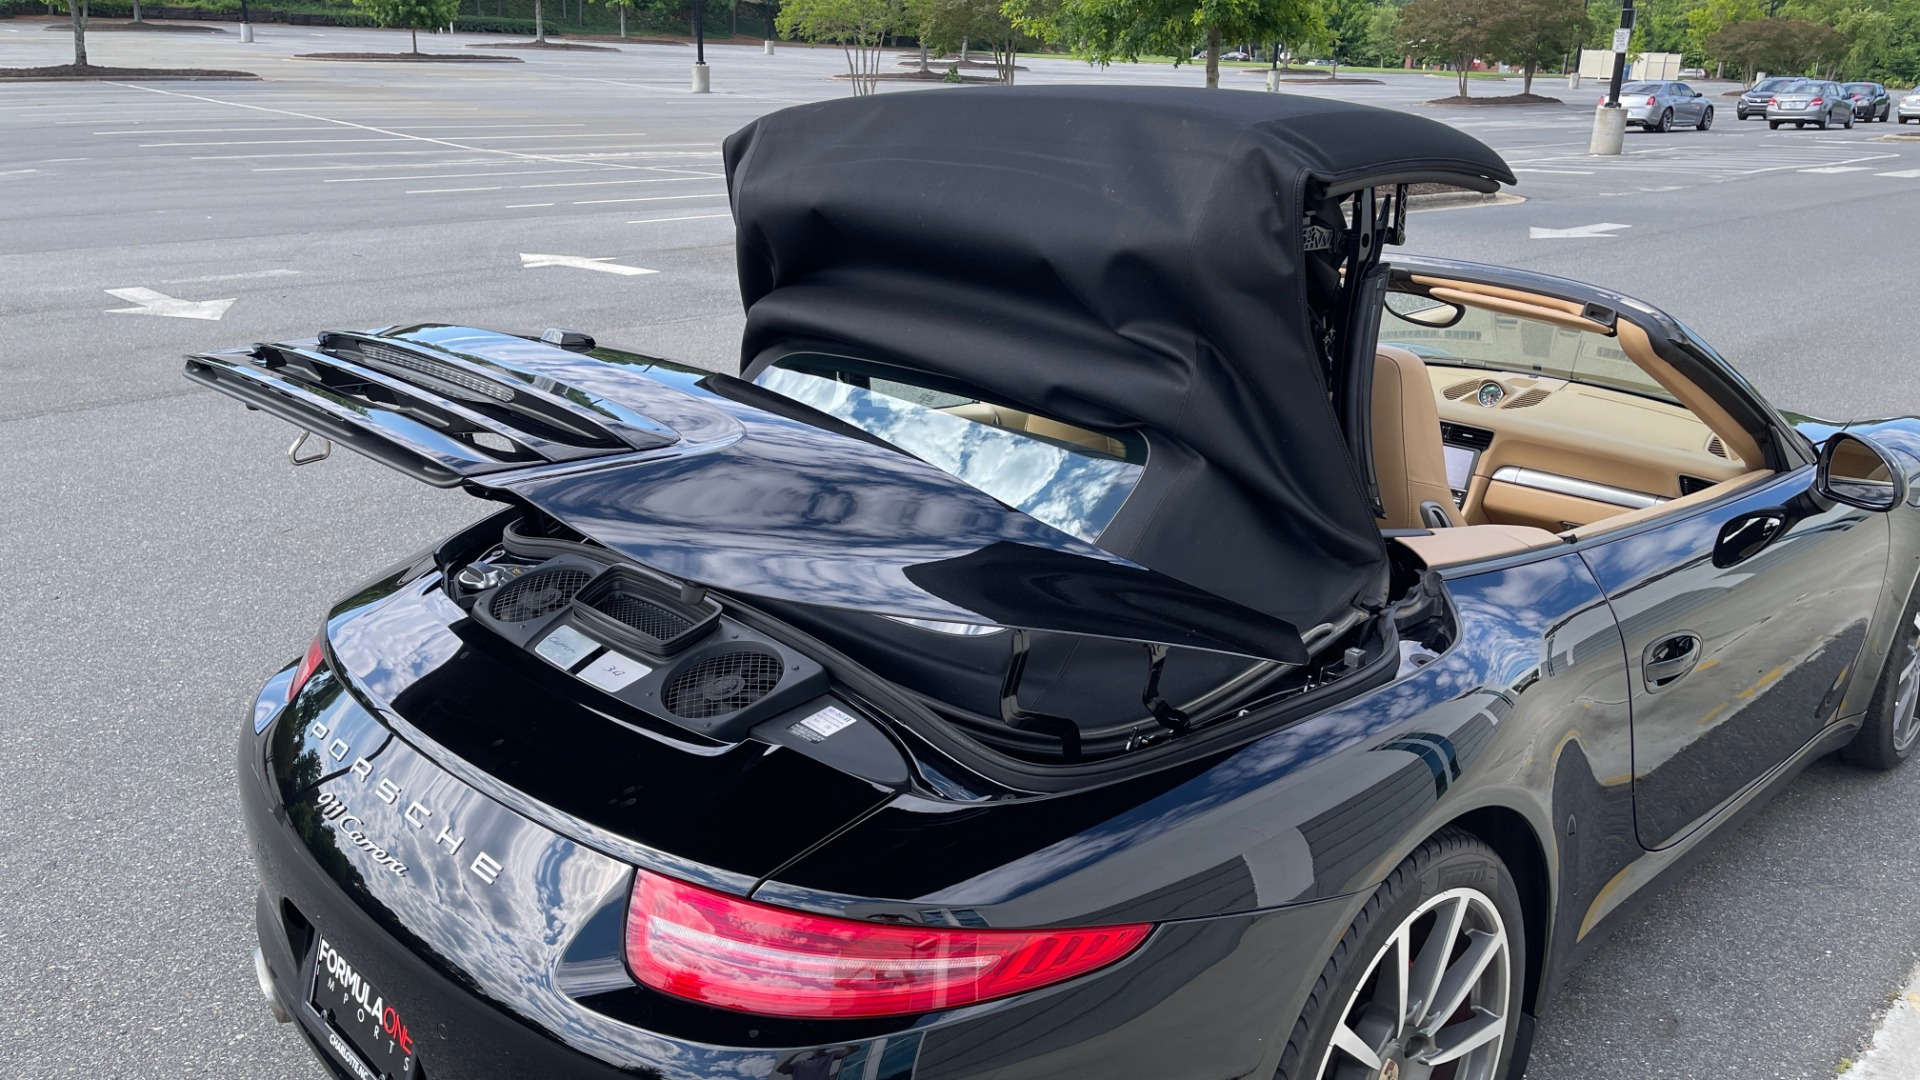 Used 2013 Porsche 911 CARRERA CABRIOLET / PDK / NAV / BOSE / HTD STS / PDLS for sale Sold at Formula Imports in Charlotte NC 28227 11